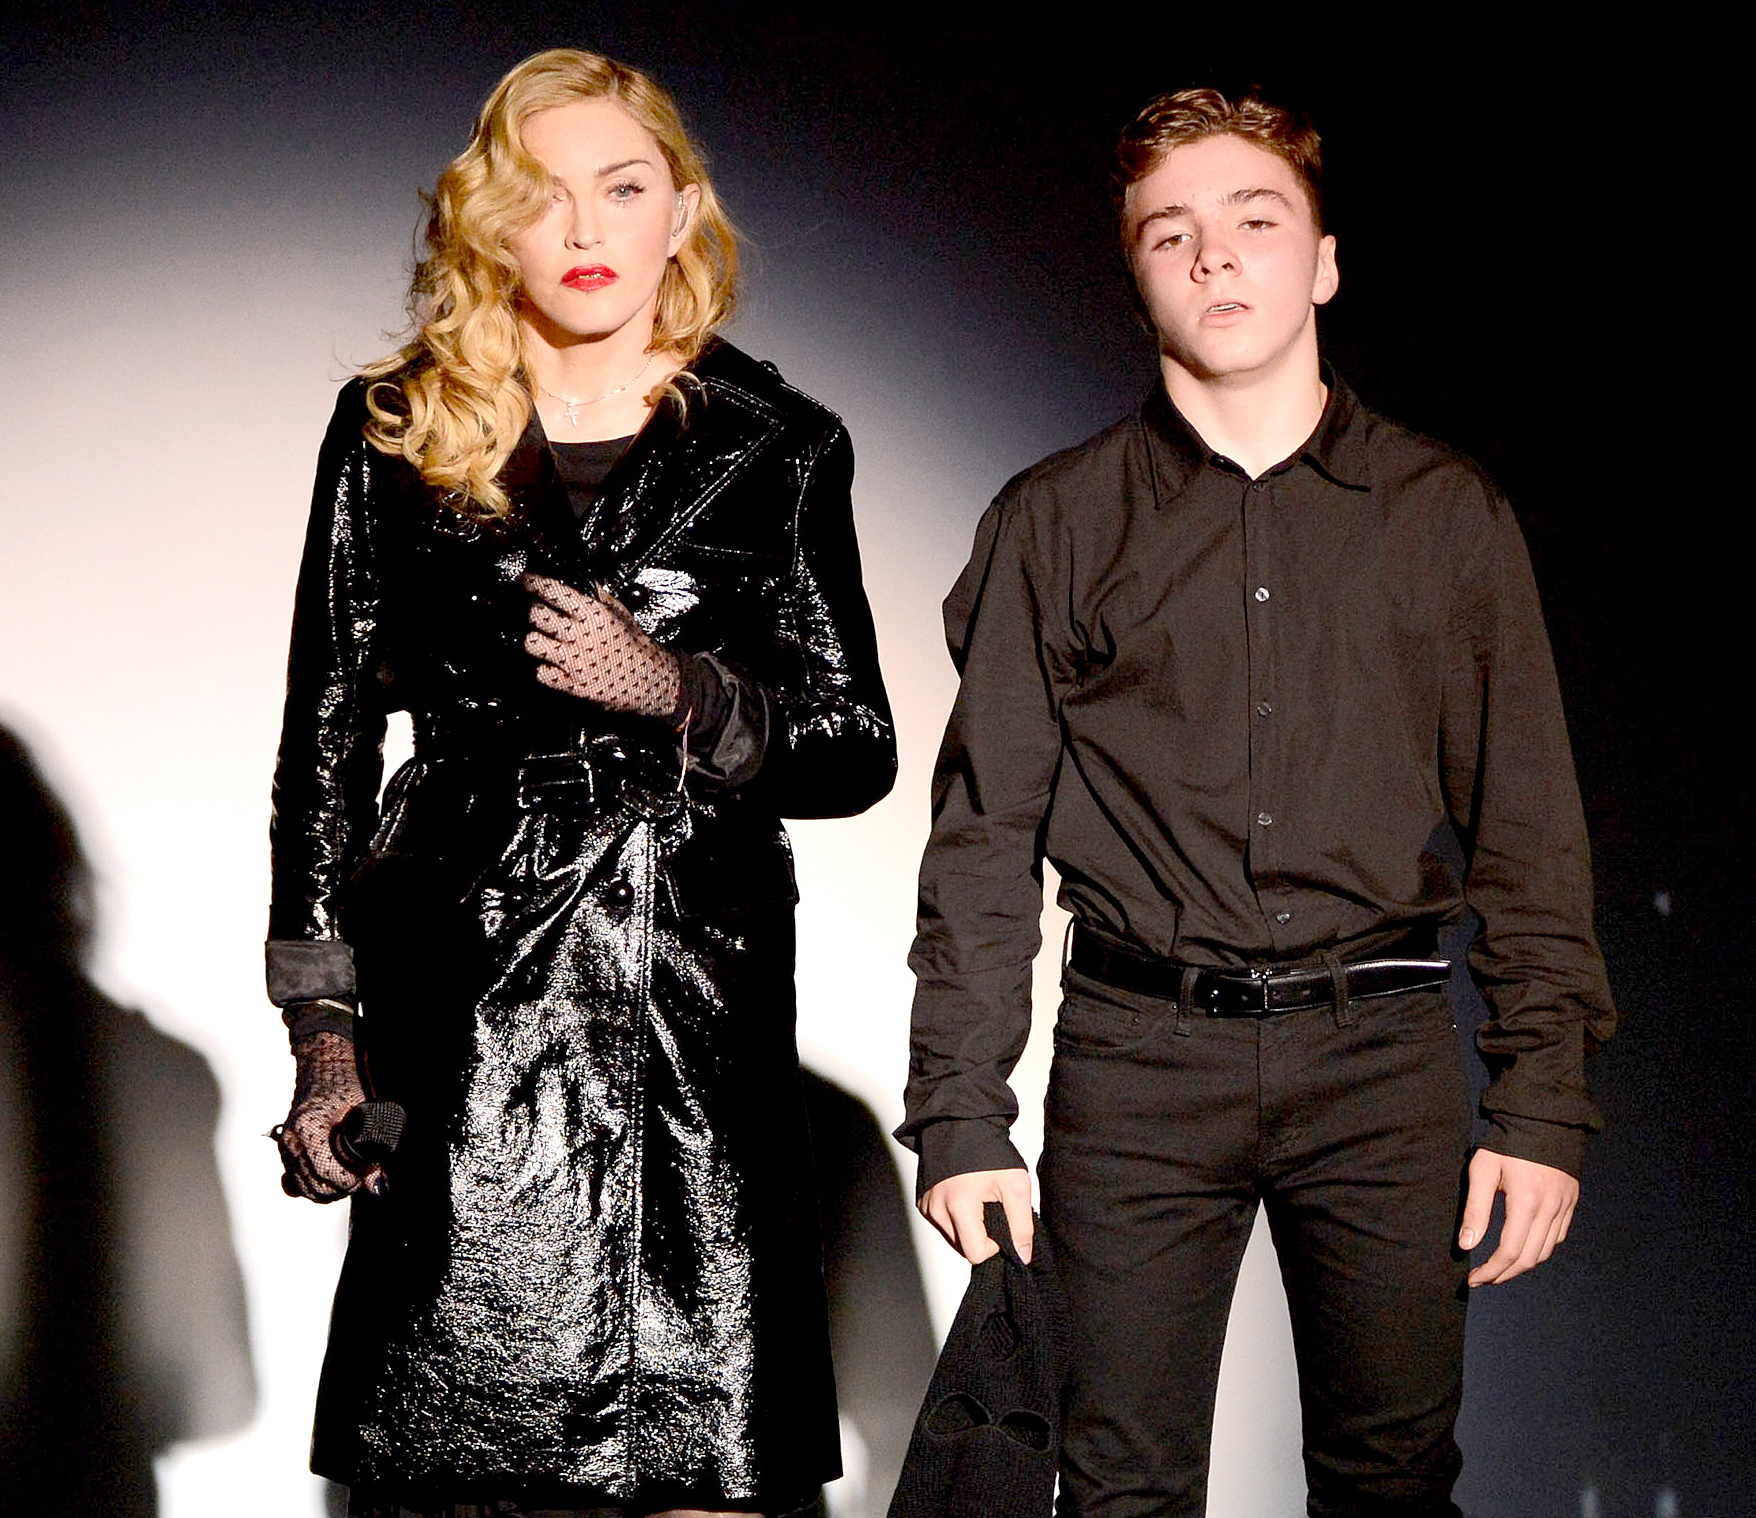 Madonna and Rocco Ritchie perform during Madonna and Steven Klein secretprojectrevolution at the Gagosian Gallery on September 24, 2013.